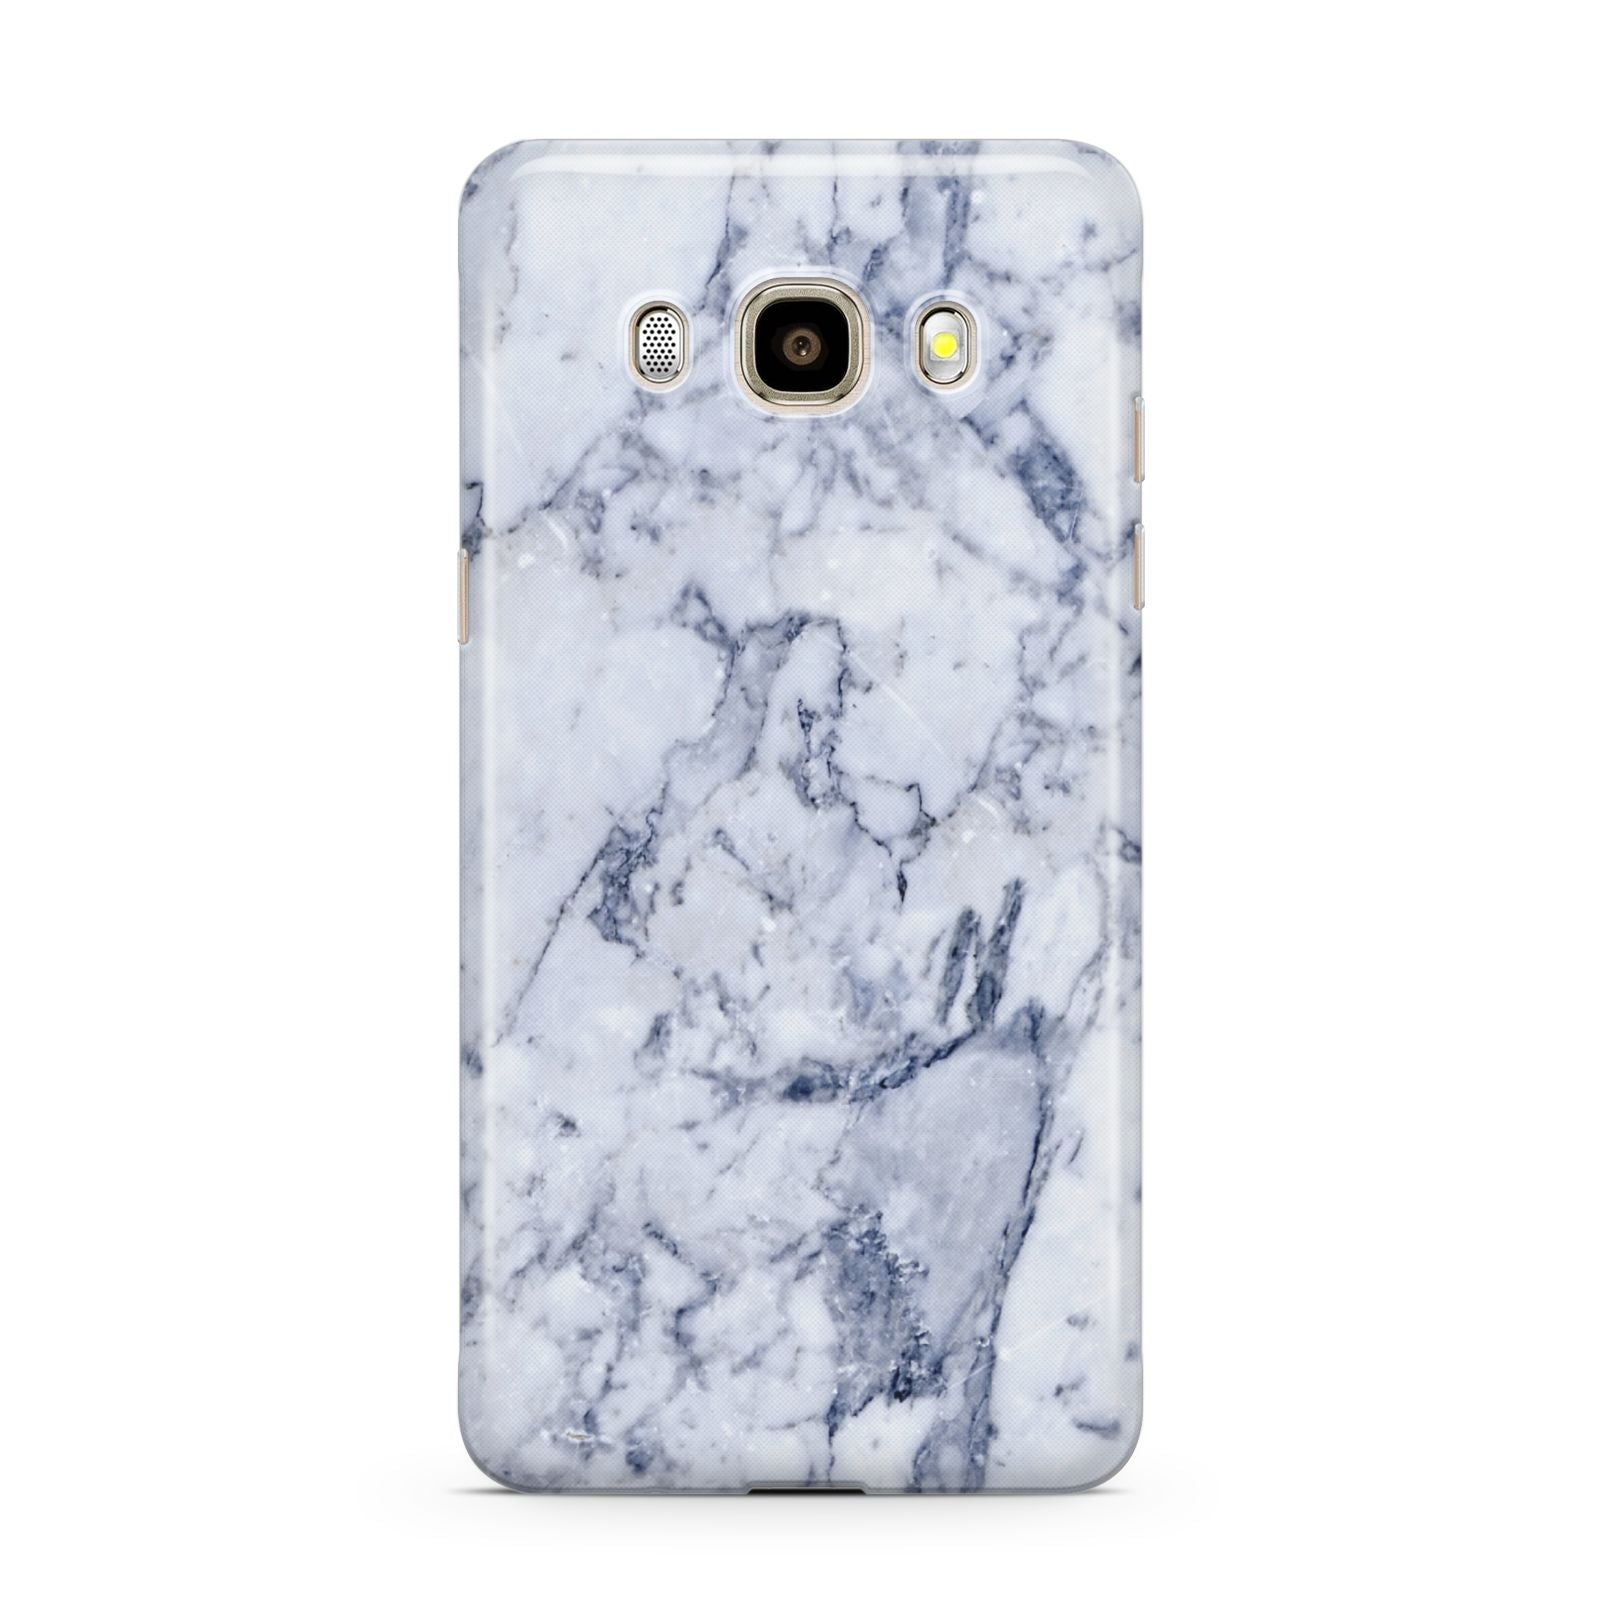 Faux Marble Blue Grey White Samsung Galaxy J7 2016 Case on gold phone